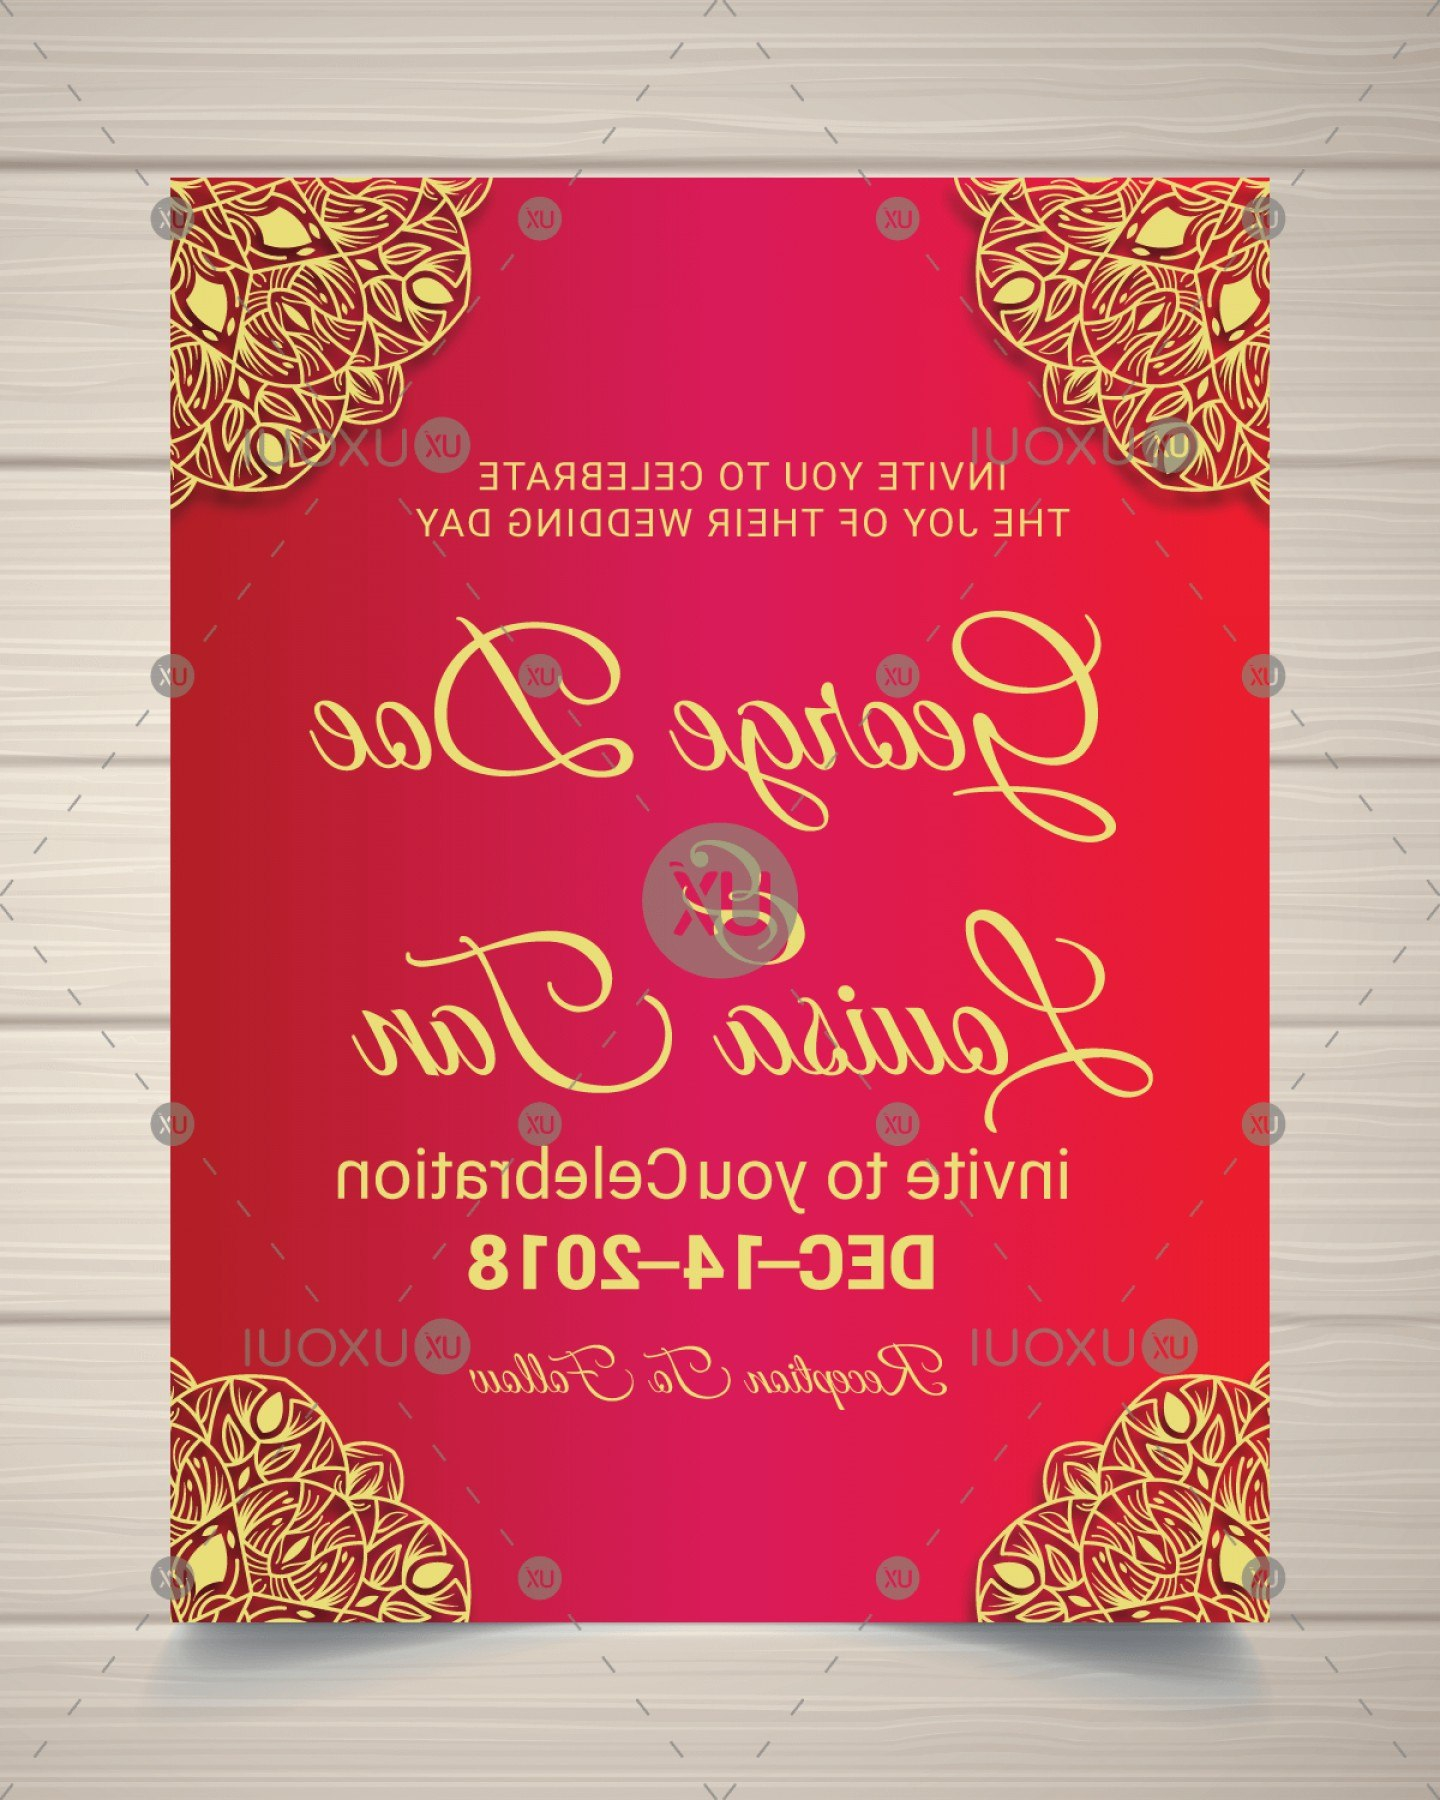 Creative Wedding Invitation Card Design Template In Mandala Style Throughout Indian Wedding Cards Design Templates